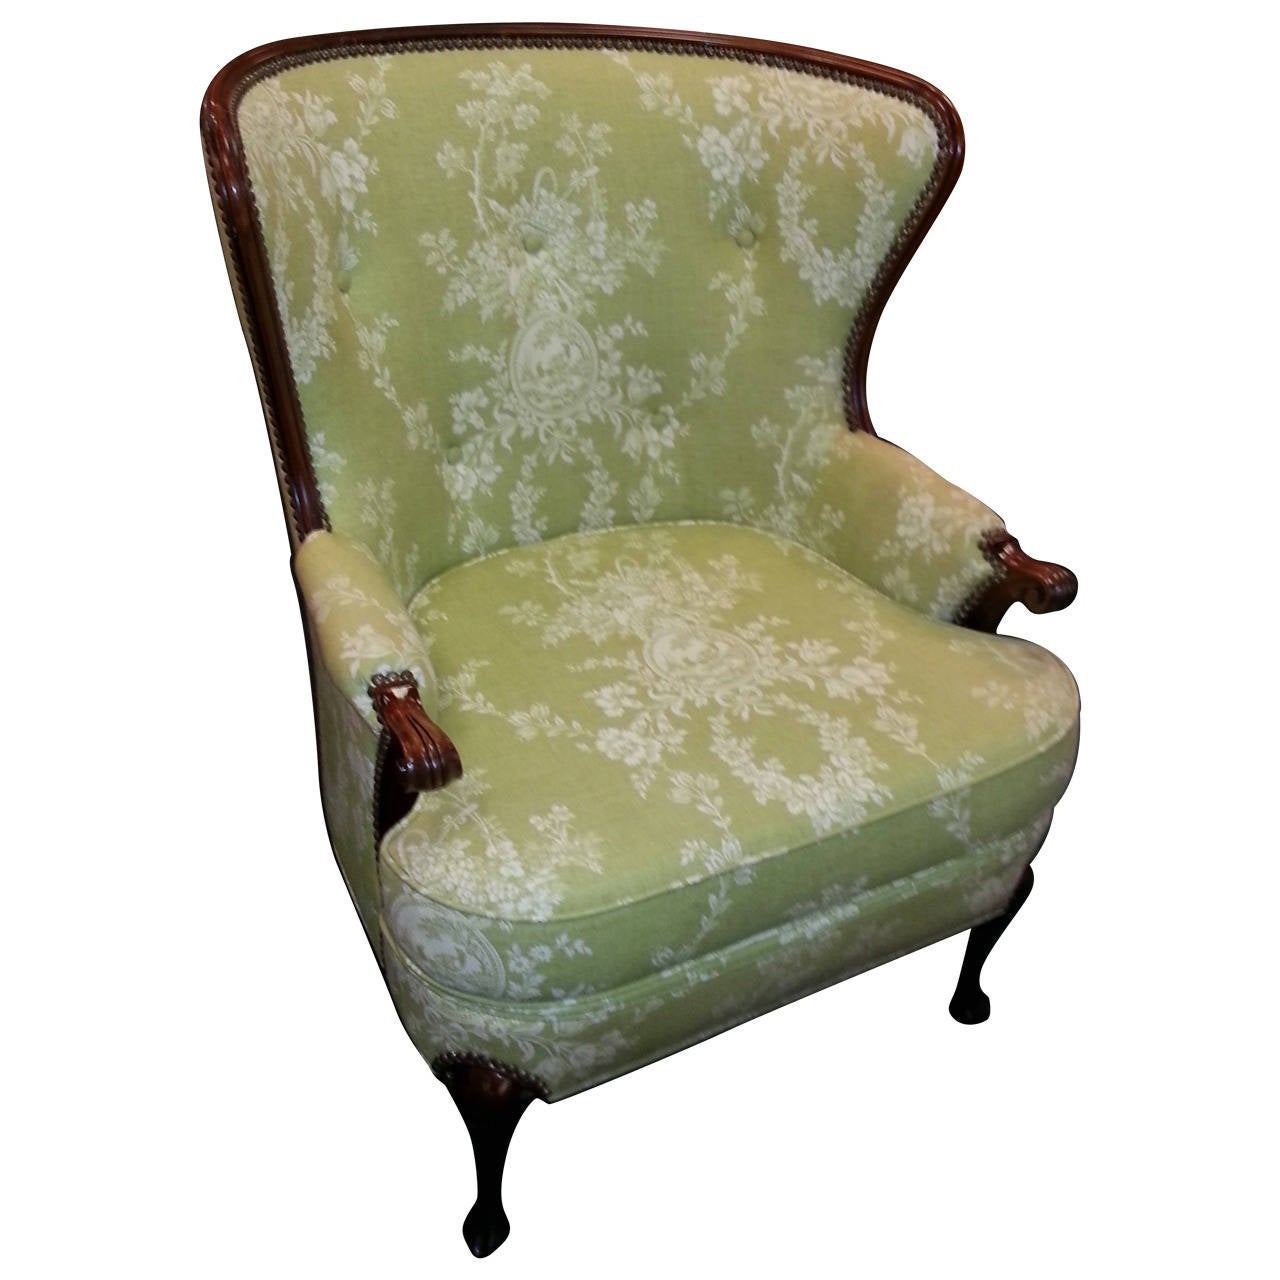 Toile Chair Wingback Chair Upholstered In Lime Green Toile At 1stdibs